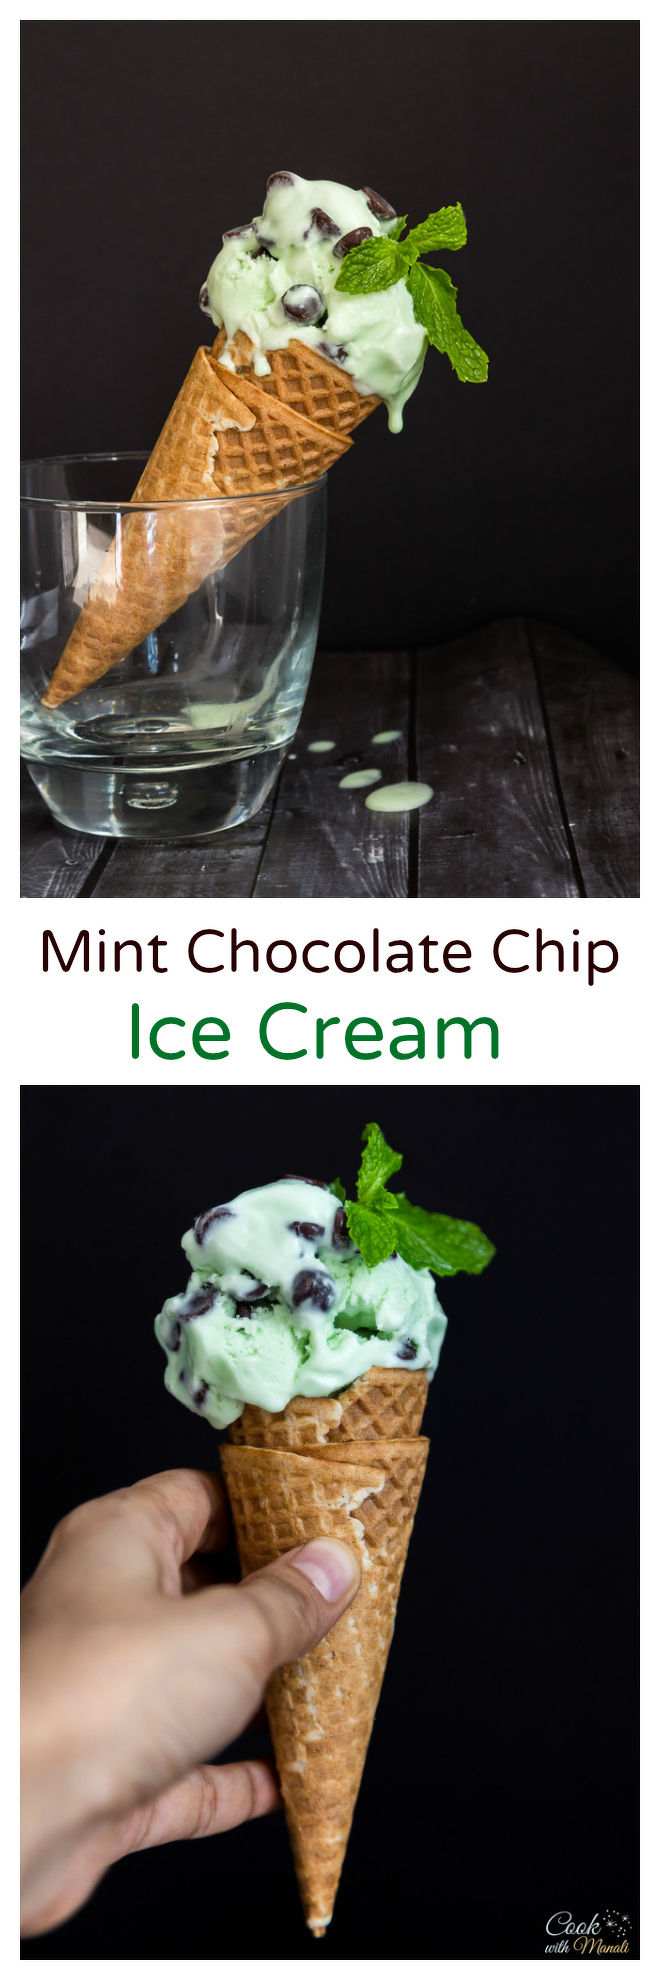 Mint Chocolate Chip Ice Cream - Cook With Manali